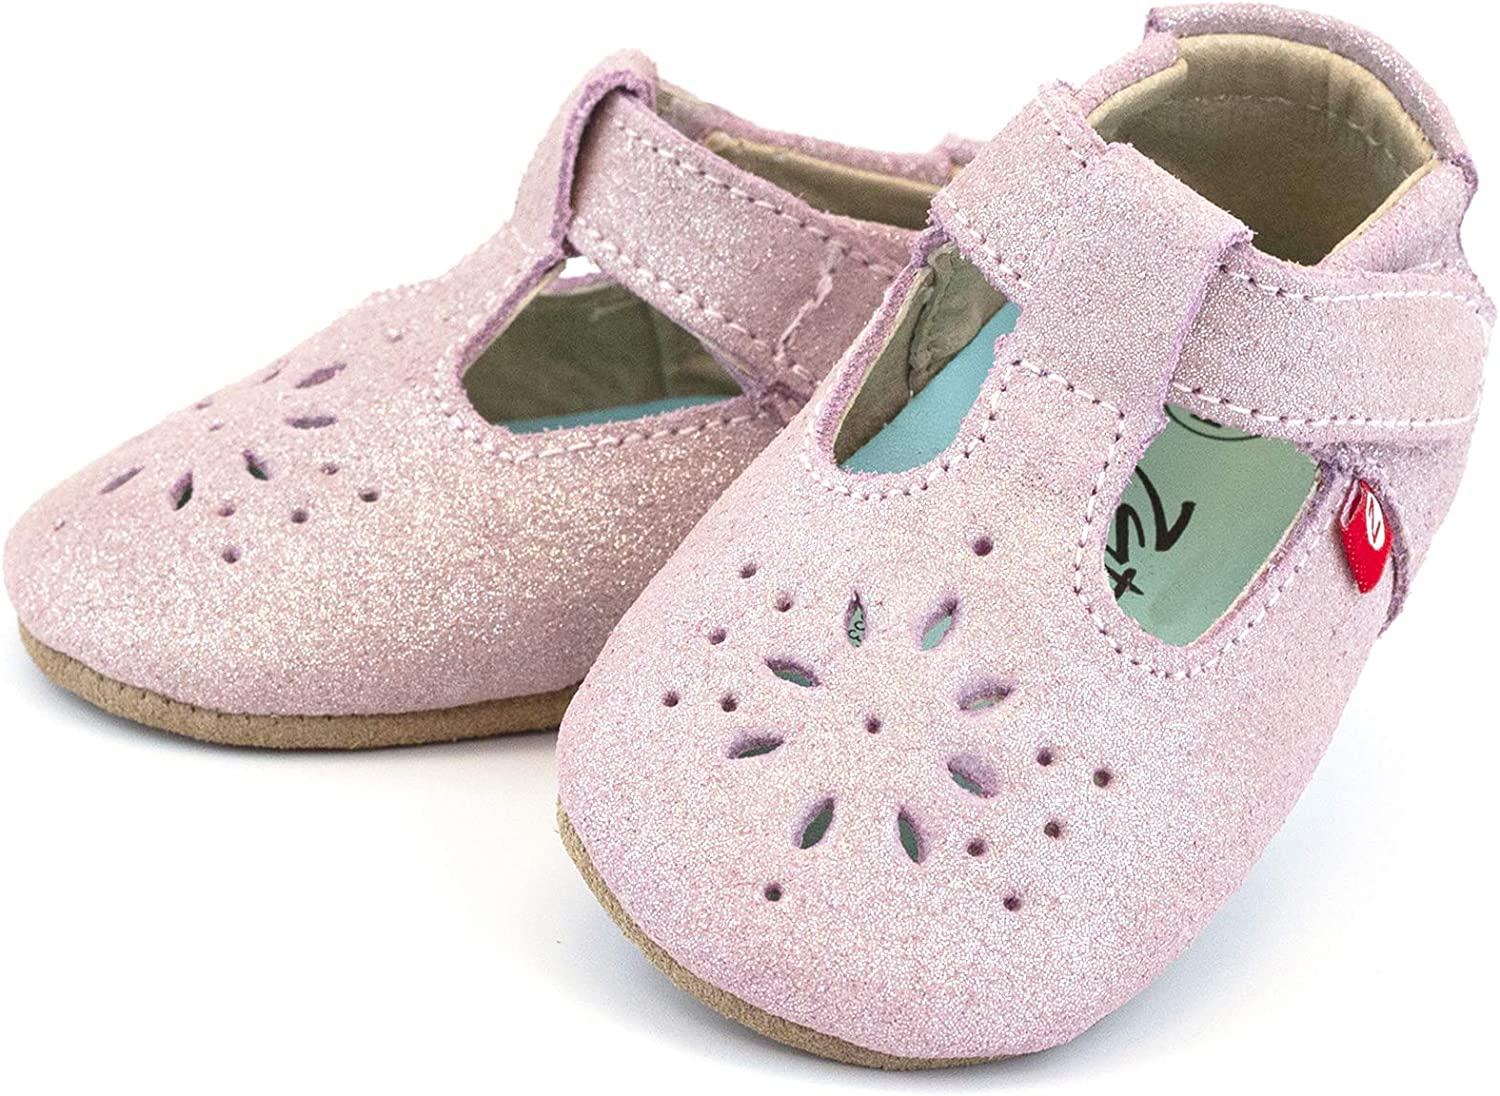 Anti-Slip and Soft Sole Zutano Easy On Leather Mary Jane Baby Shoes